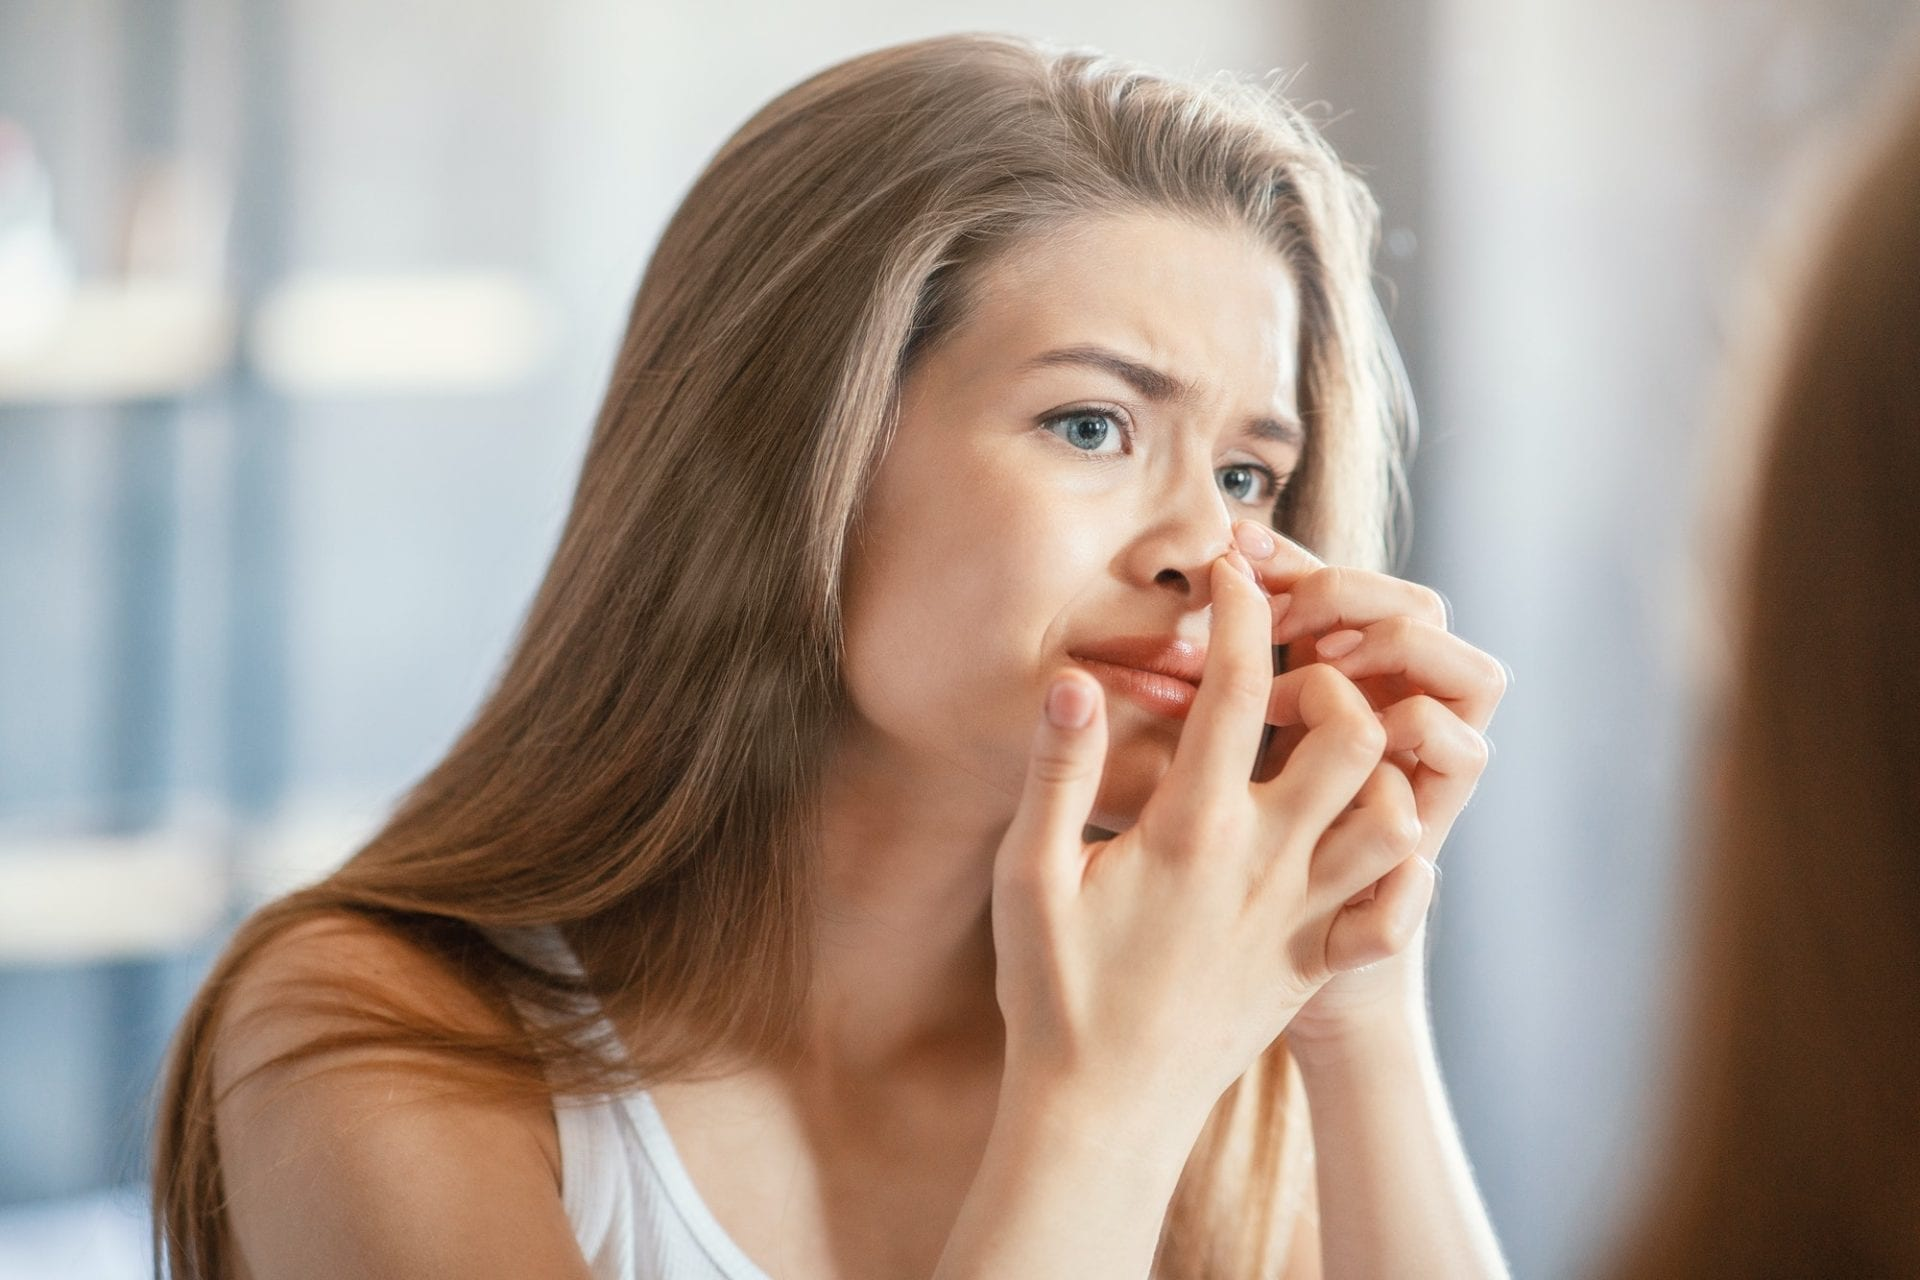 Displeased young woman squeezing acne on her nose while looking in mirror indoors